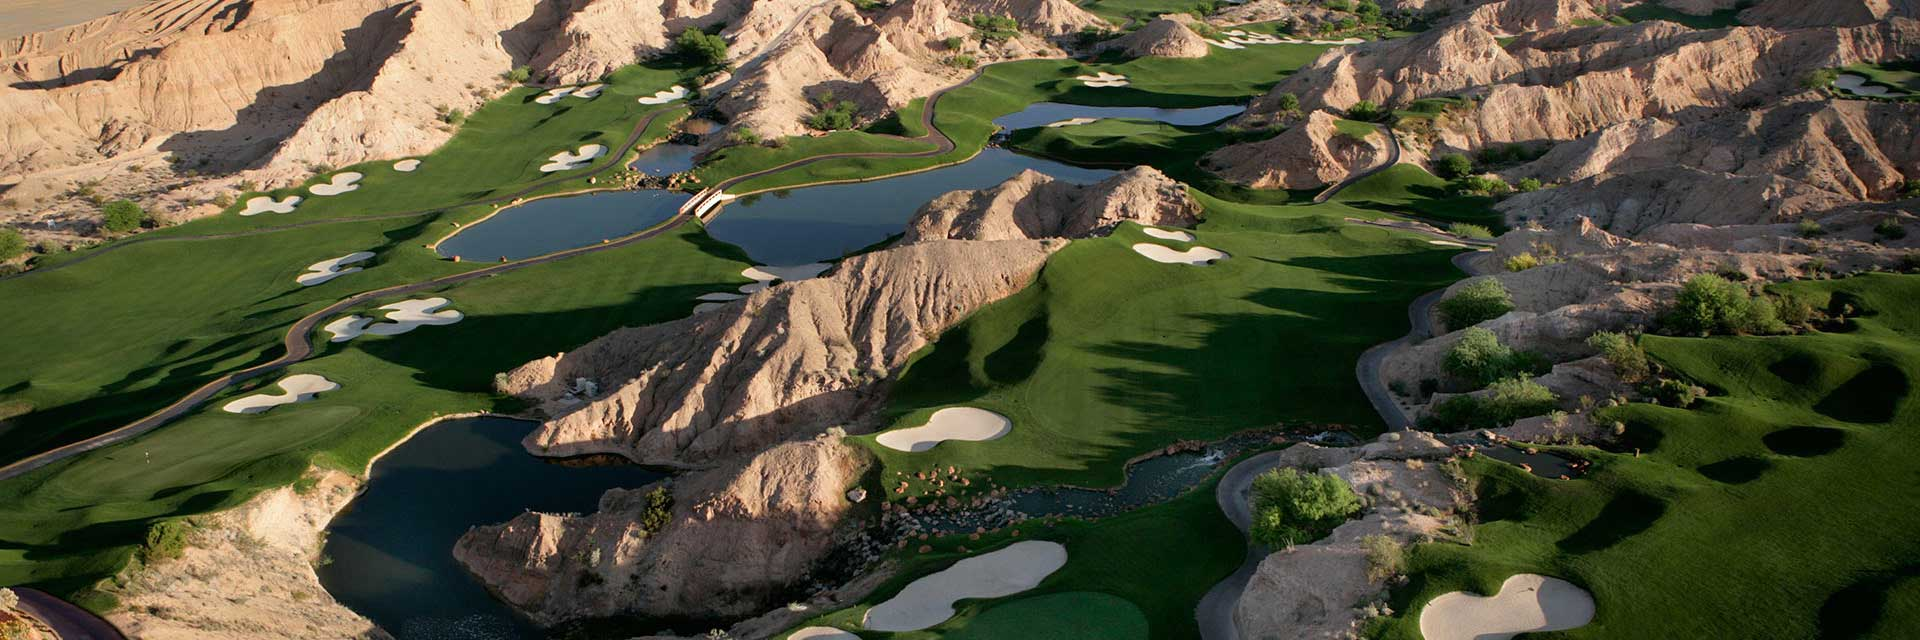 Mesquite, NV: Stonehaven Private Homes + Wolf Creek / Conestoga / Oasis / Coyote for $125 per person, per day!